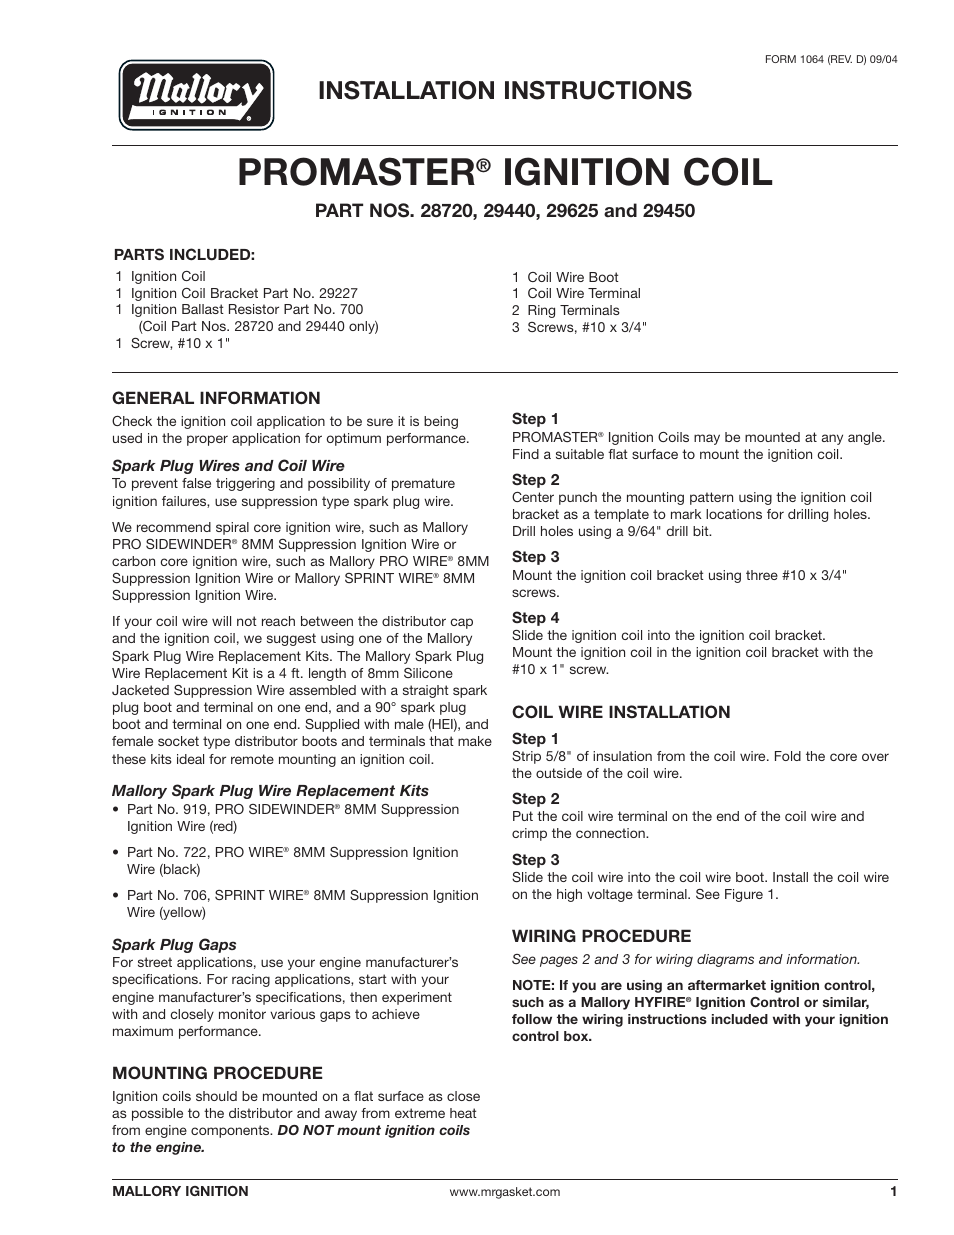 mallory ignition wiring diagram sony xplod cdx gt330 promaster coil 29440_29450_29625_29450 user manual | 12 pages